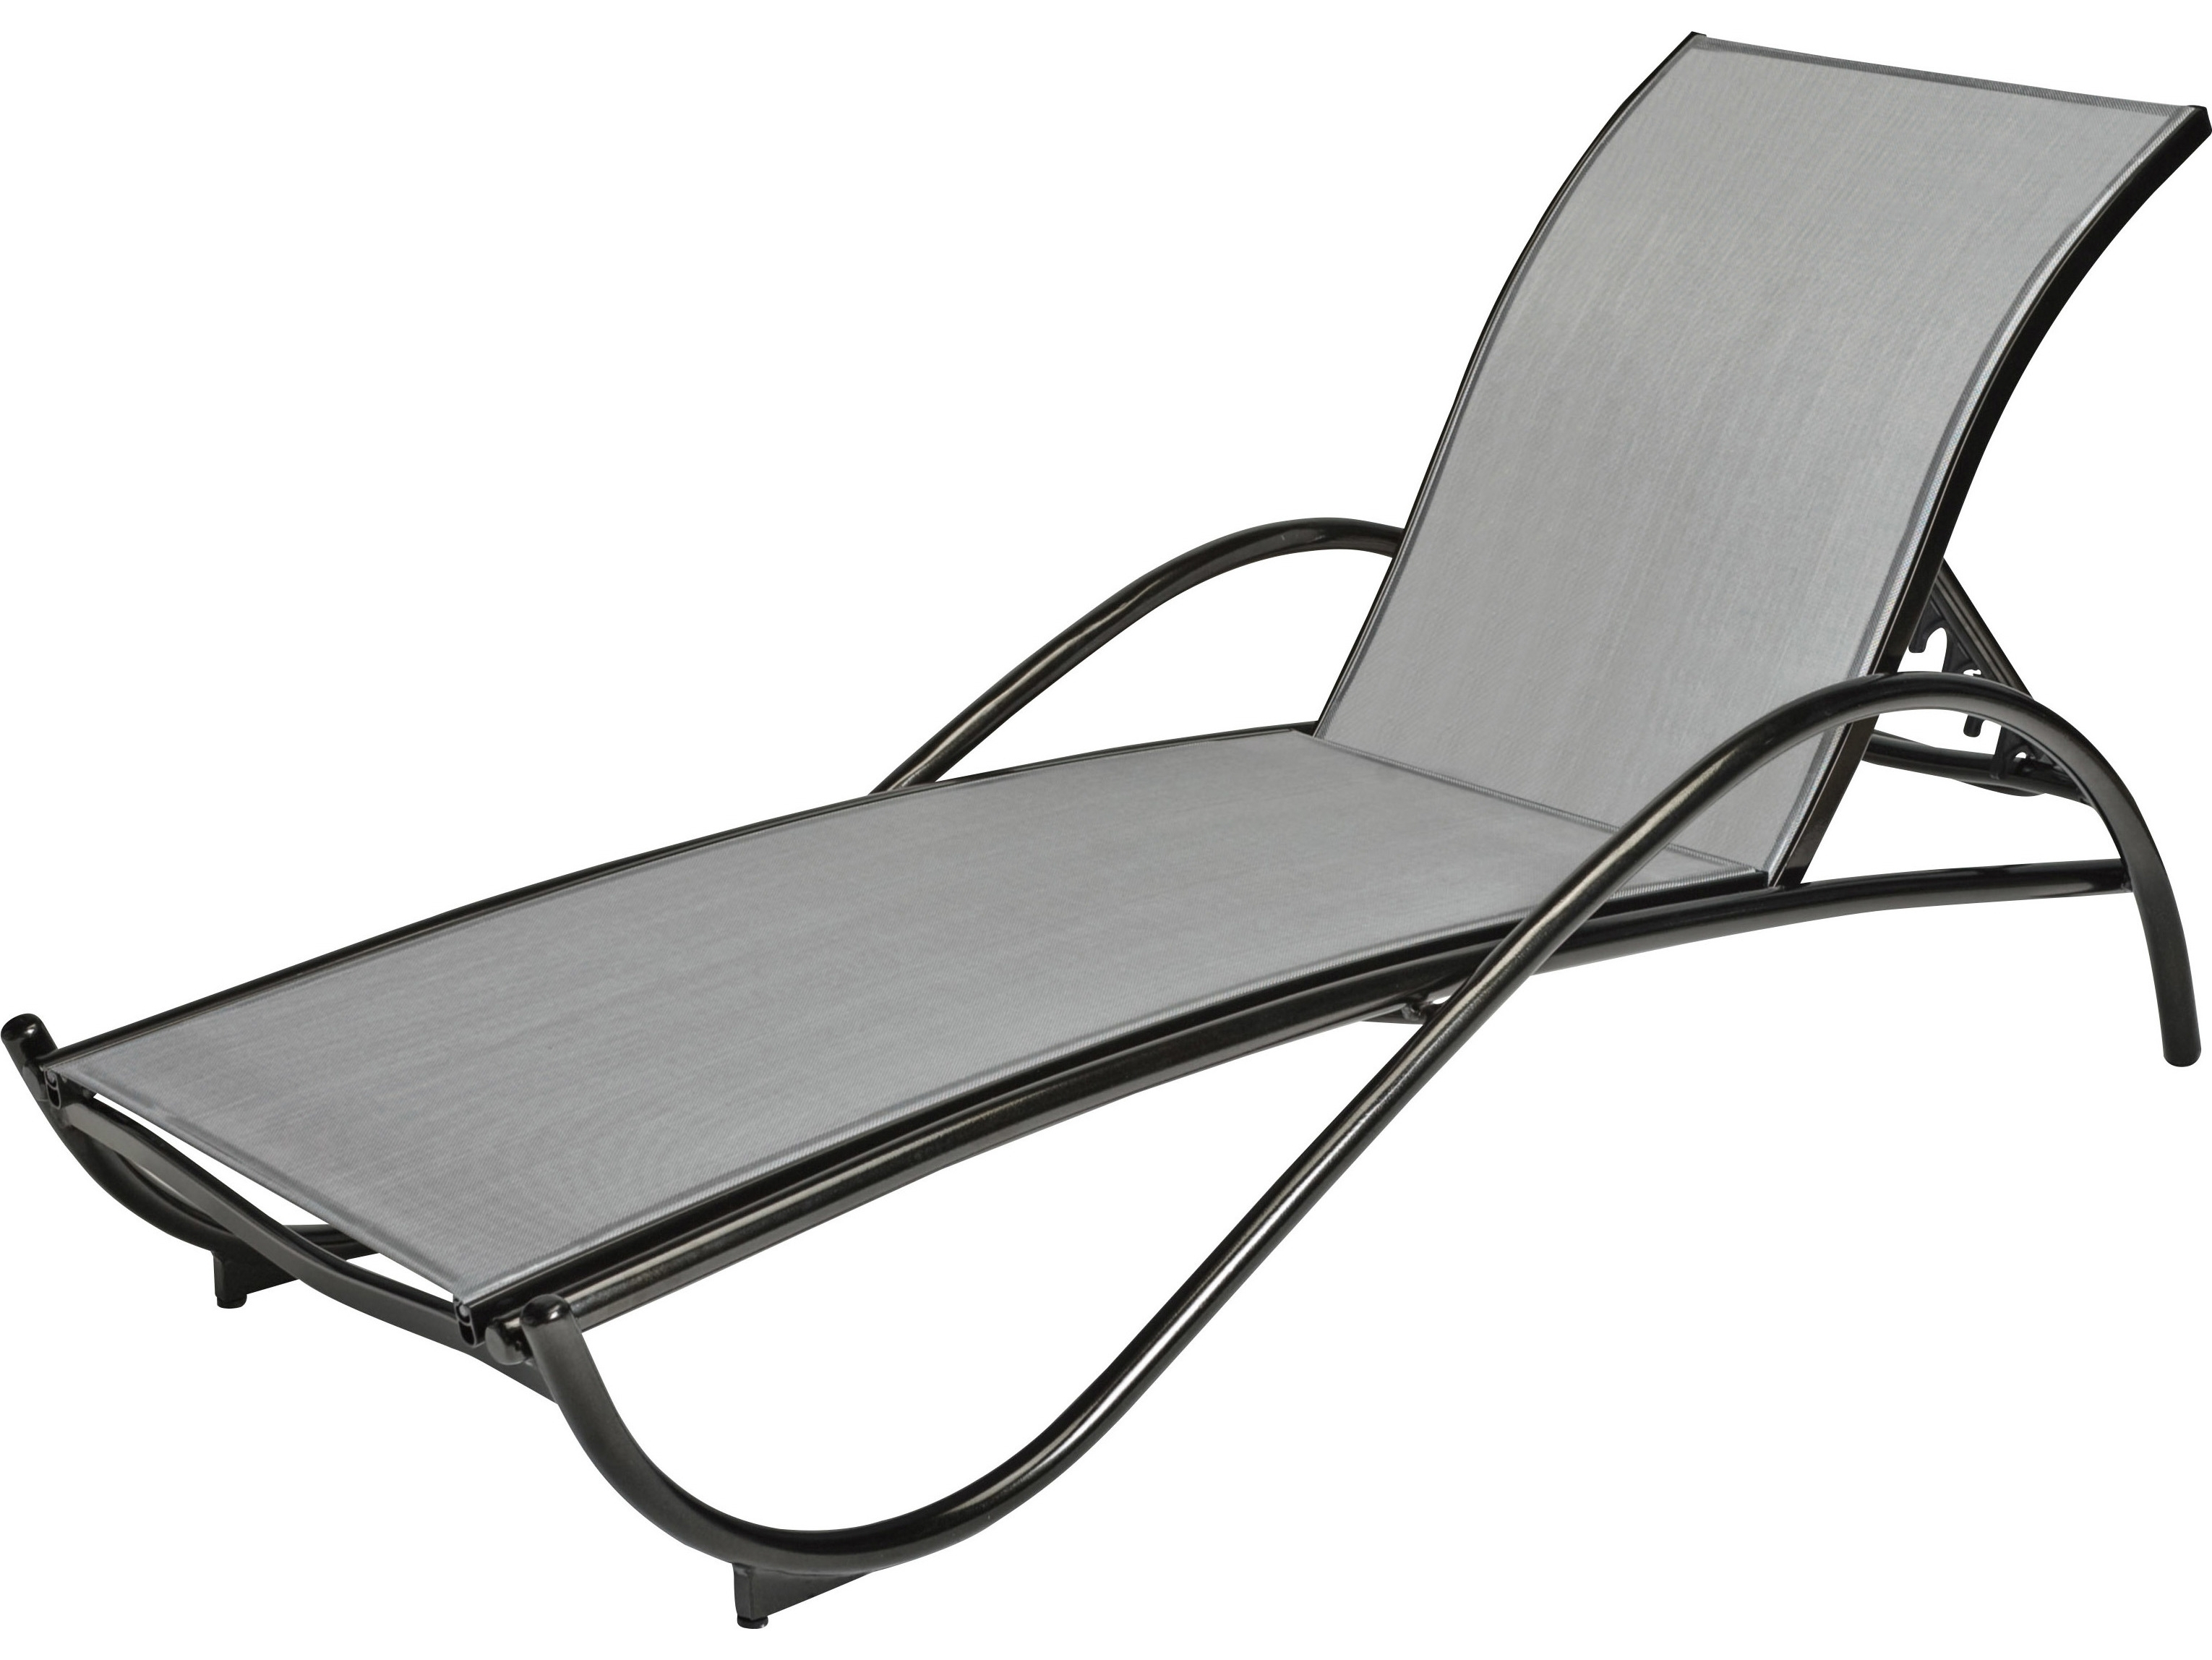 Aluminum Chaise Lounge Outdoor Chairs Throughout Newest Picture 4 Of 38 – Lounge Outdoor Chairs Elegant Woodard Tribeca (View 10 of 15)